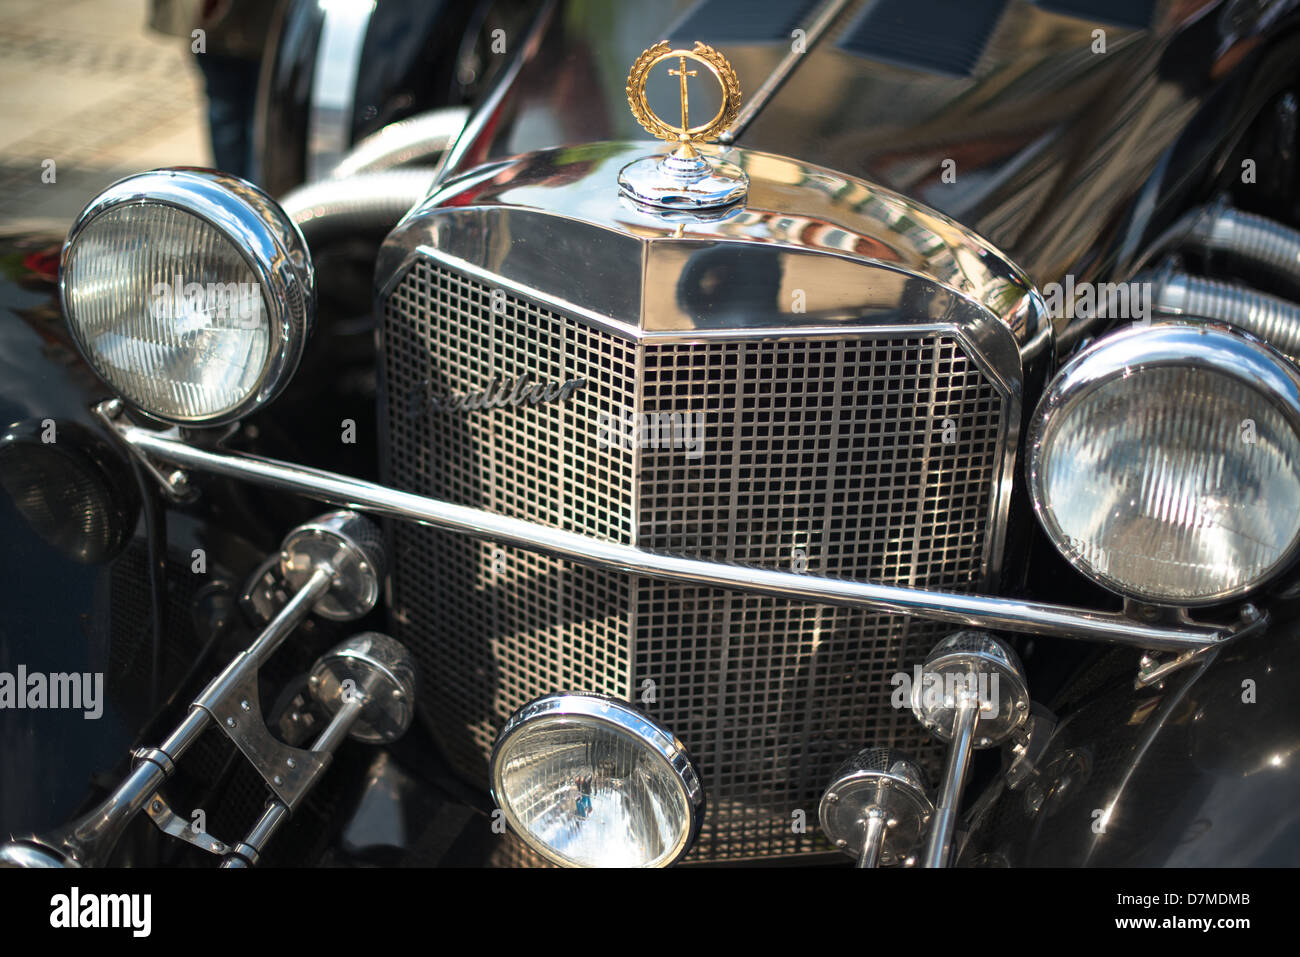 An Excalibur classic car is presented during the eMotionen show on the market square on May 5, 2013 in Ludwigsburg, - Stock Image